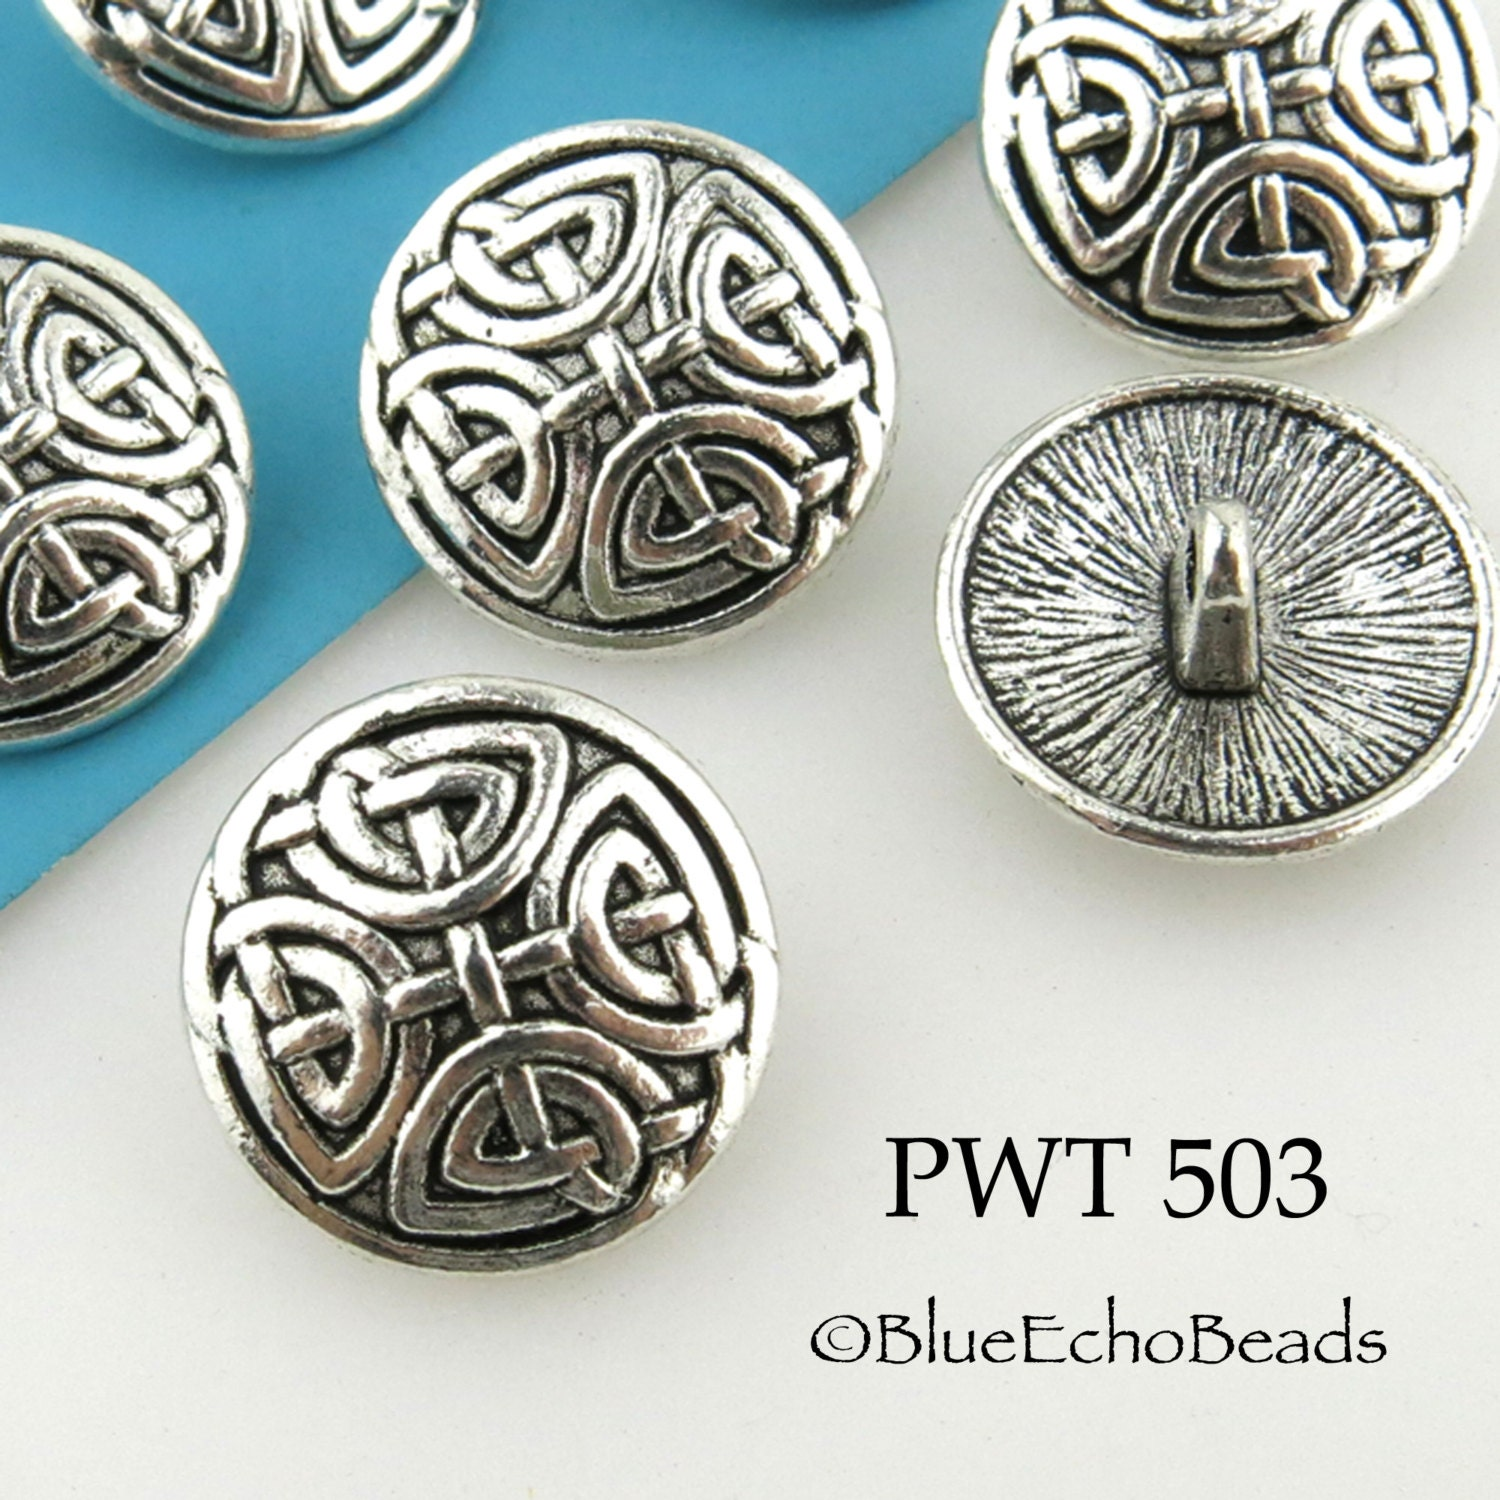 Celtic Cross Pewter Button 17mm Antiqued Silver PWT 503 6 - photo#2